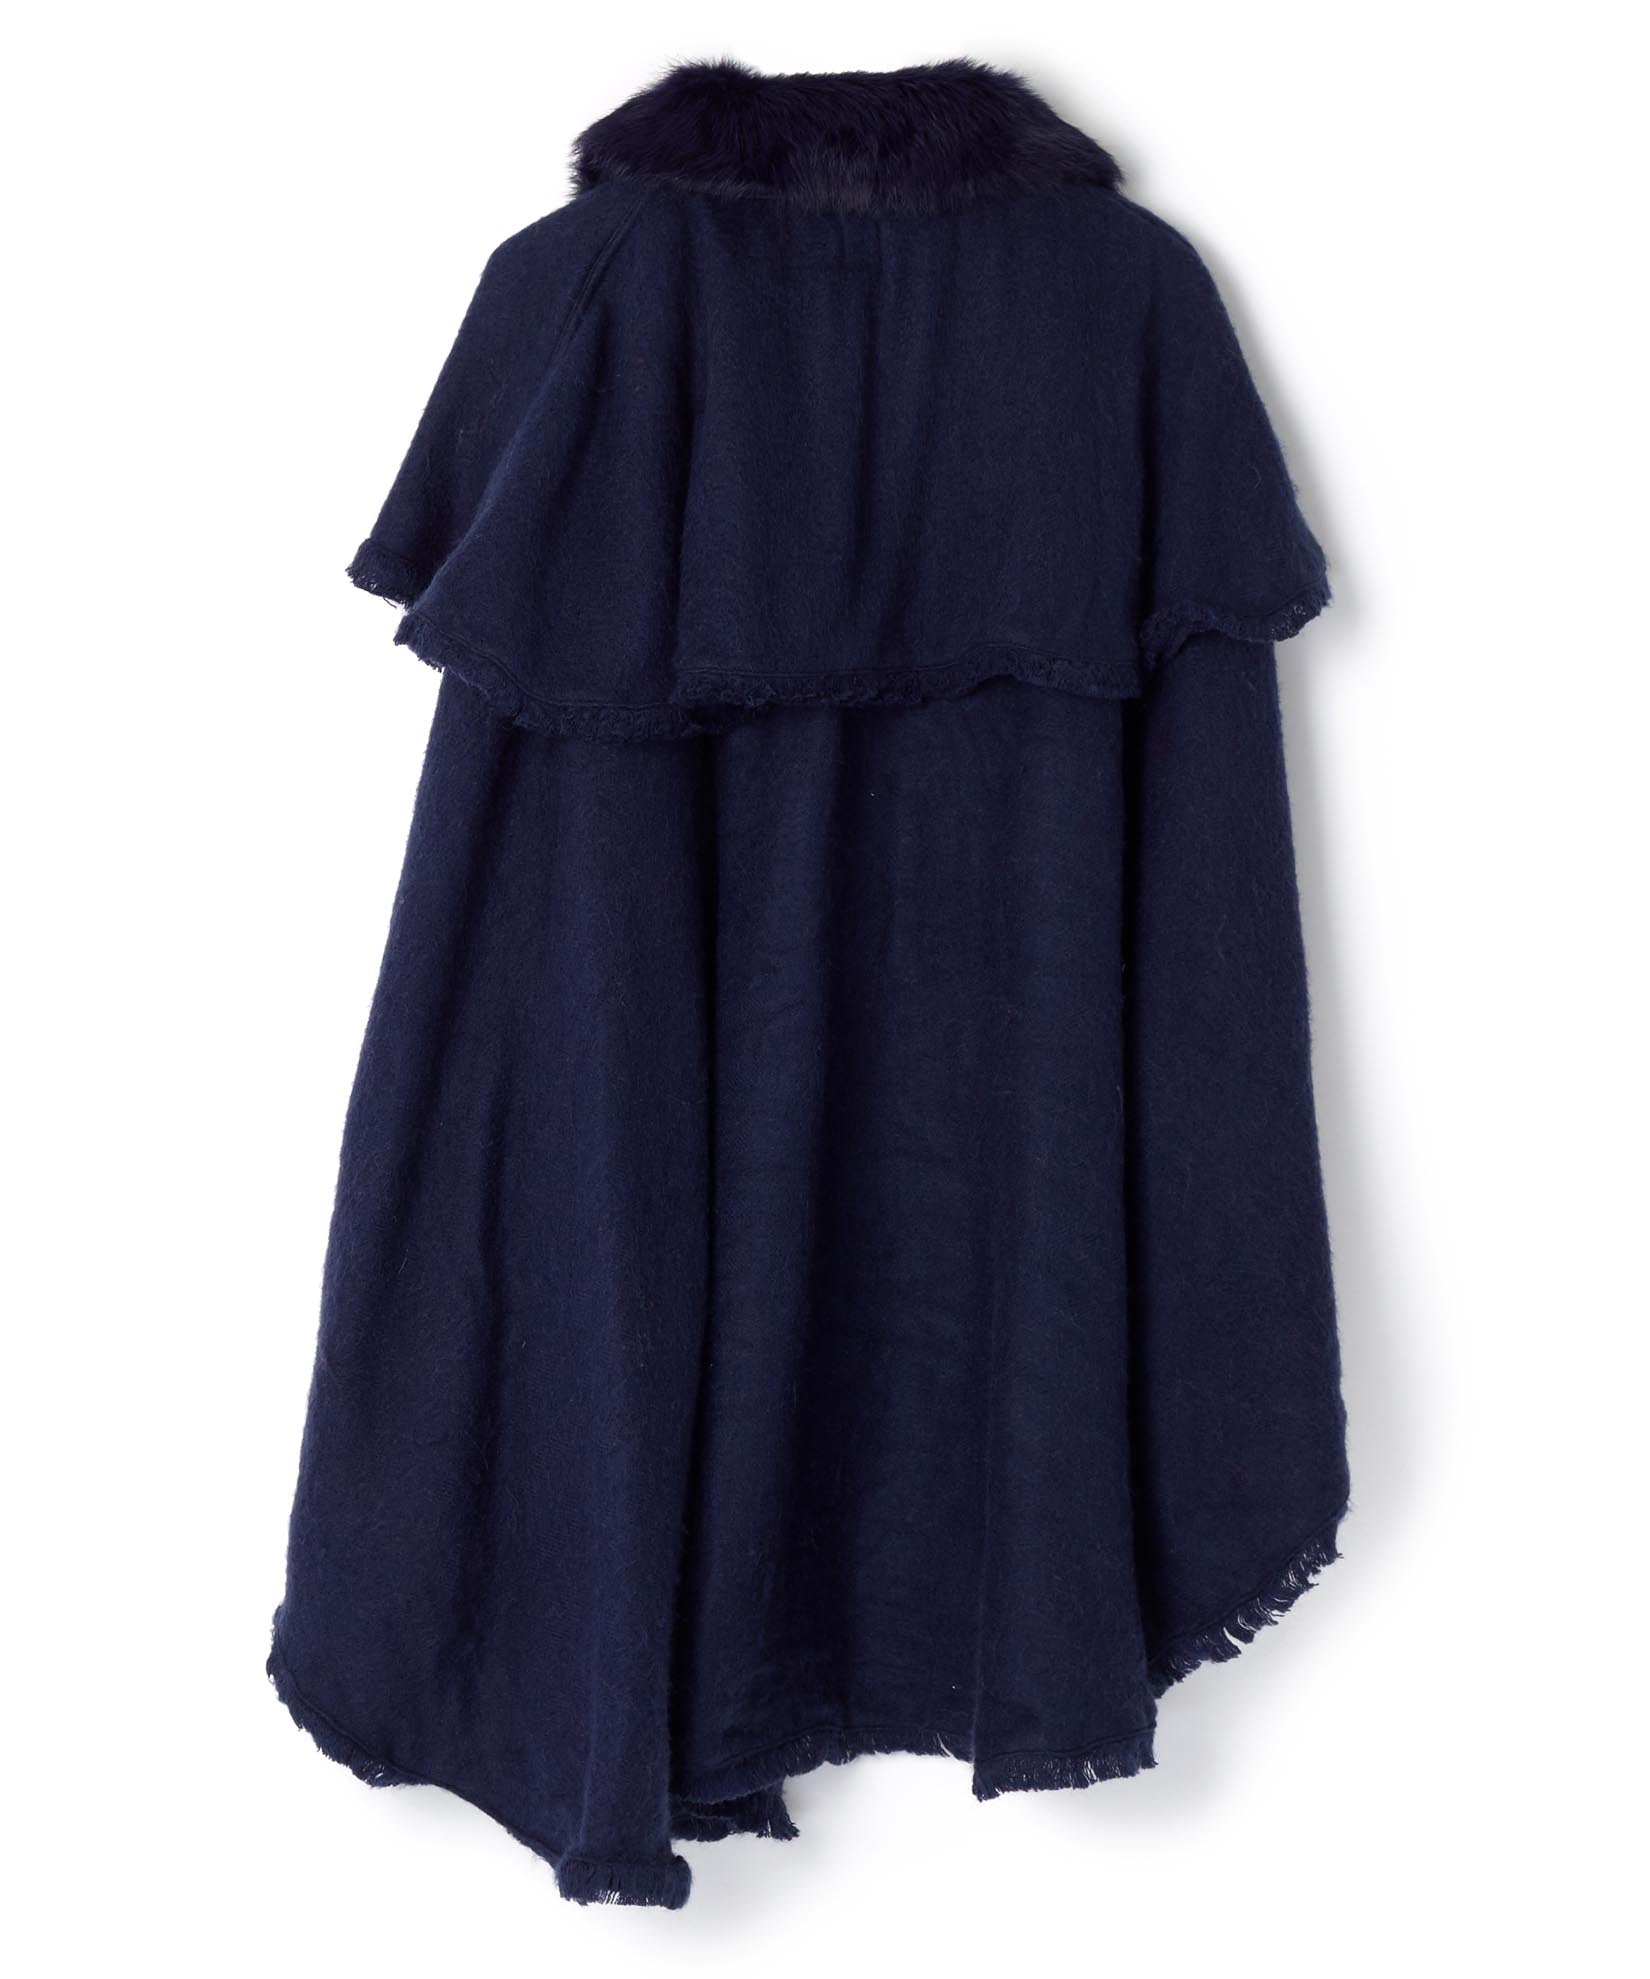 Maritime Navy - Fur Collar Zipper Poncho